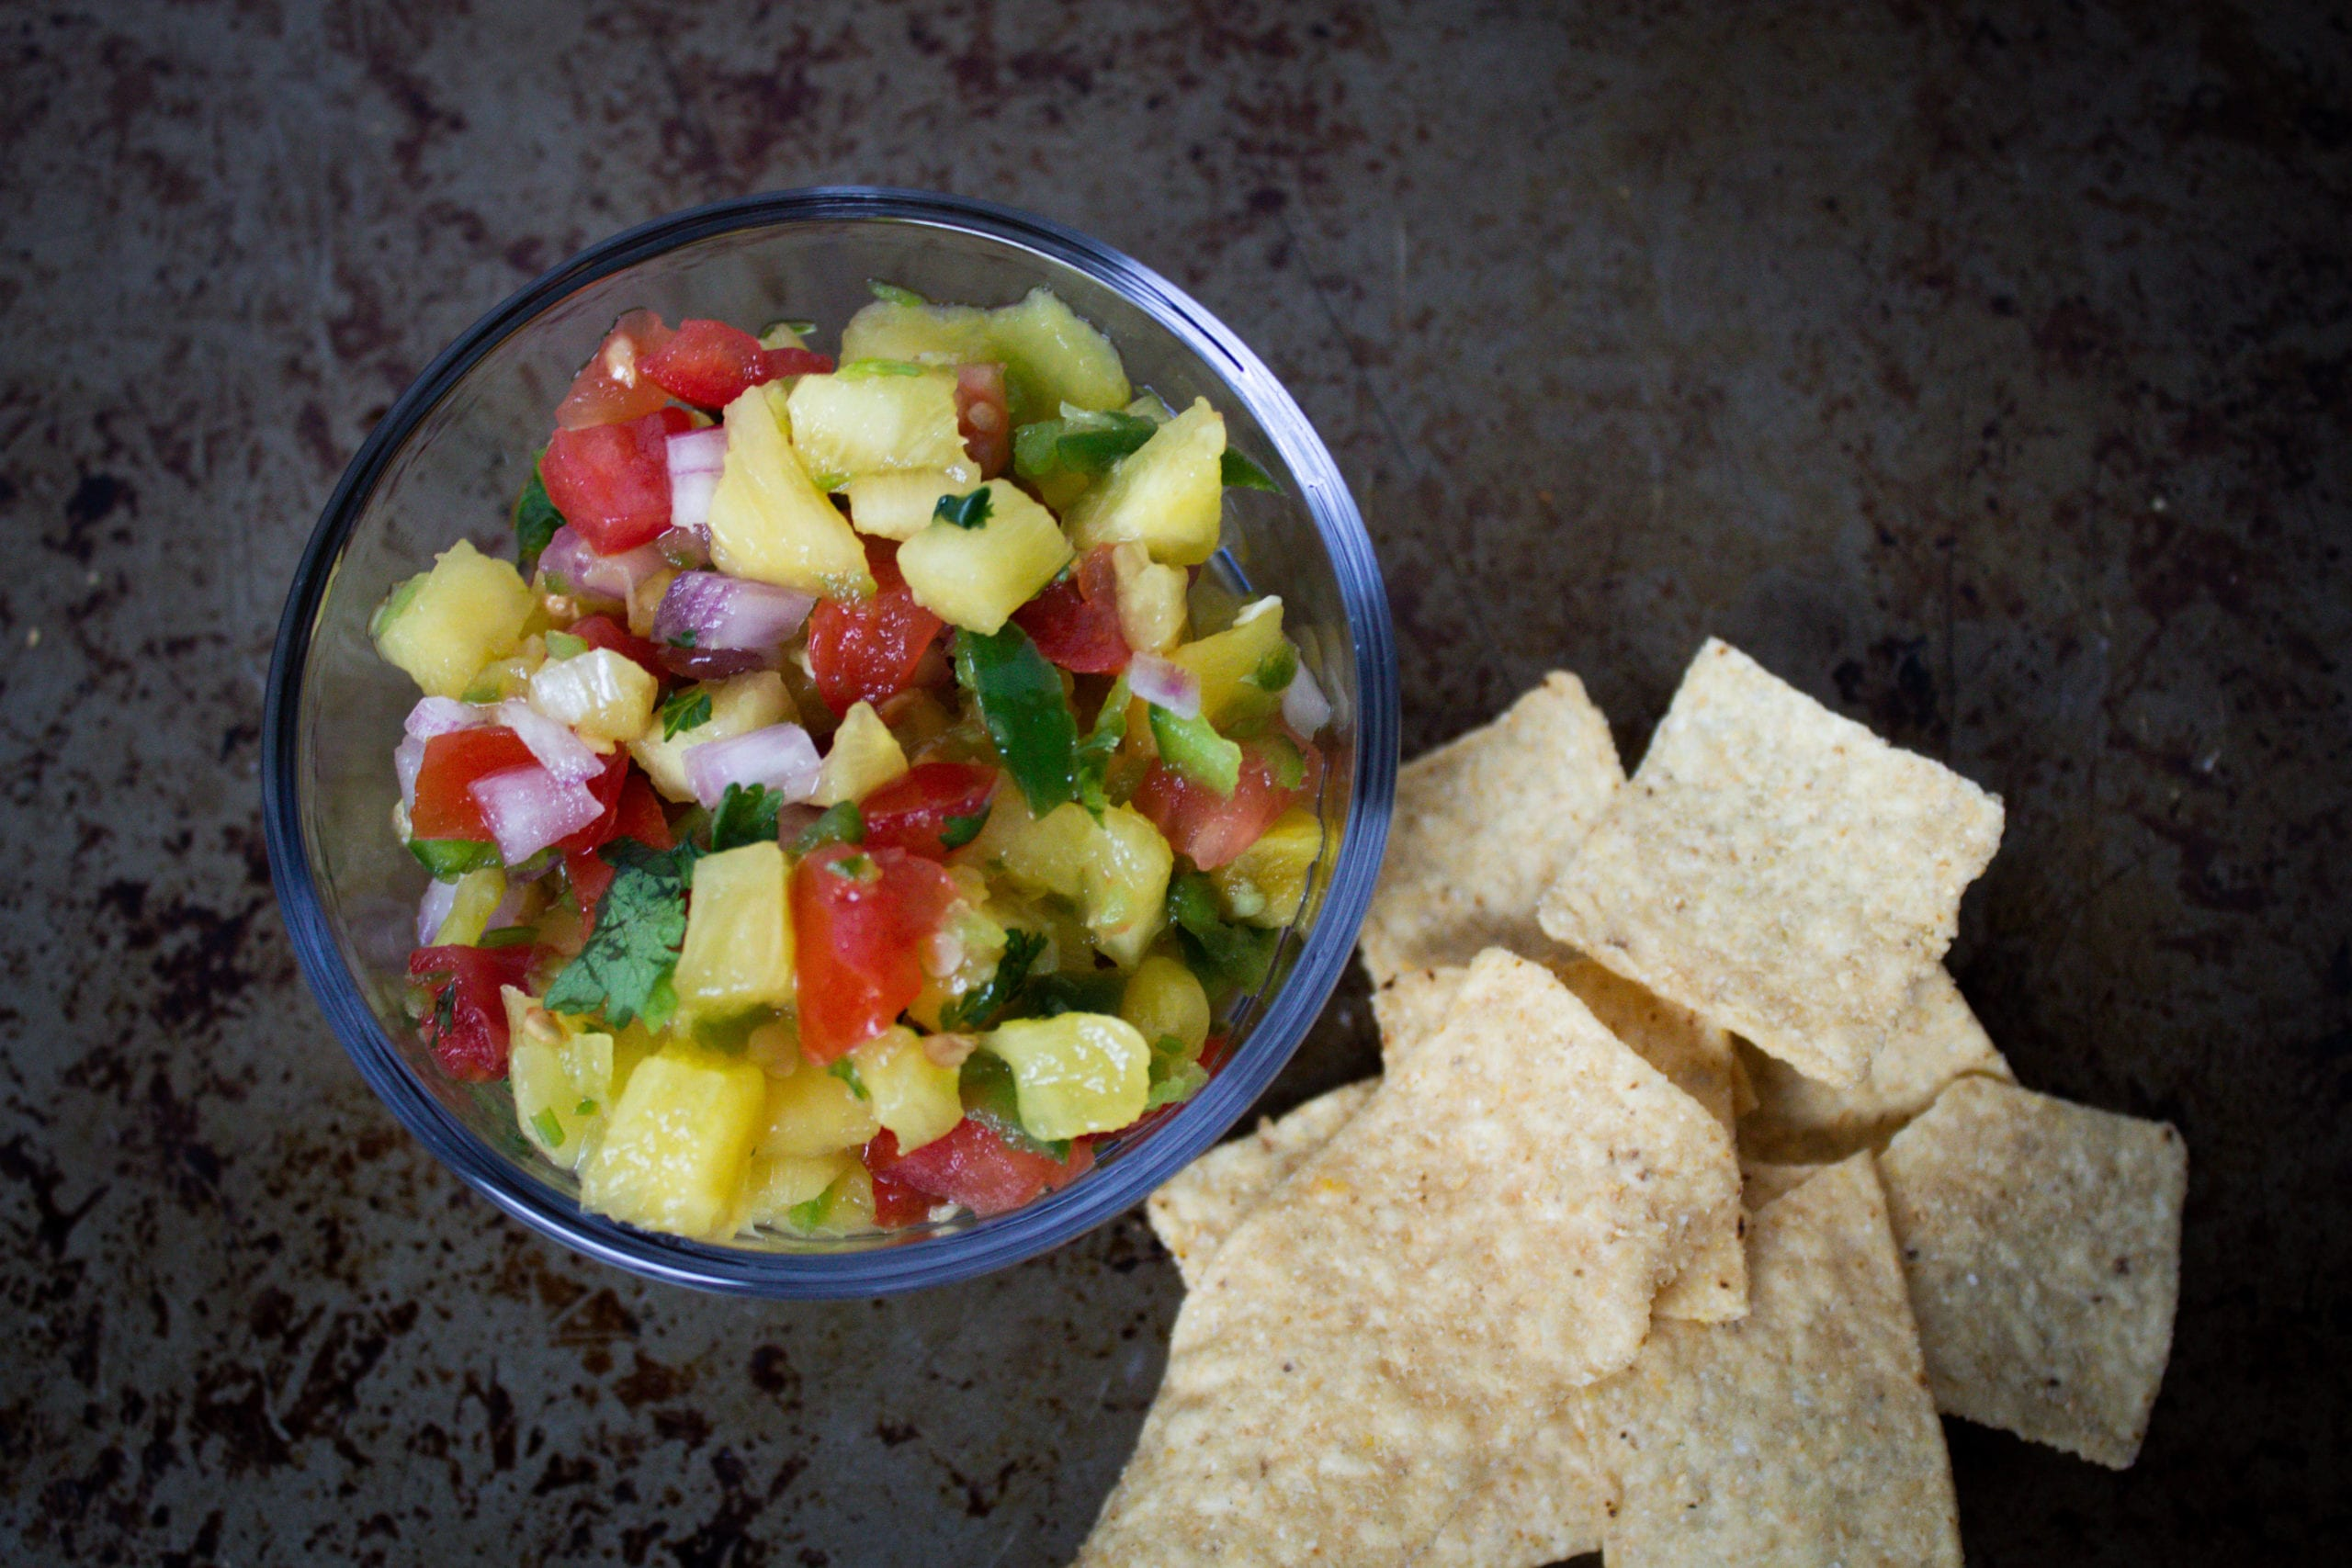 Bowl of pineapple salsa with fresh pineapple, tomatoes, red onion, jalapeno, cilantro and lime served with chips